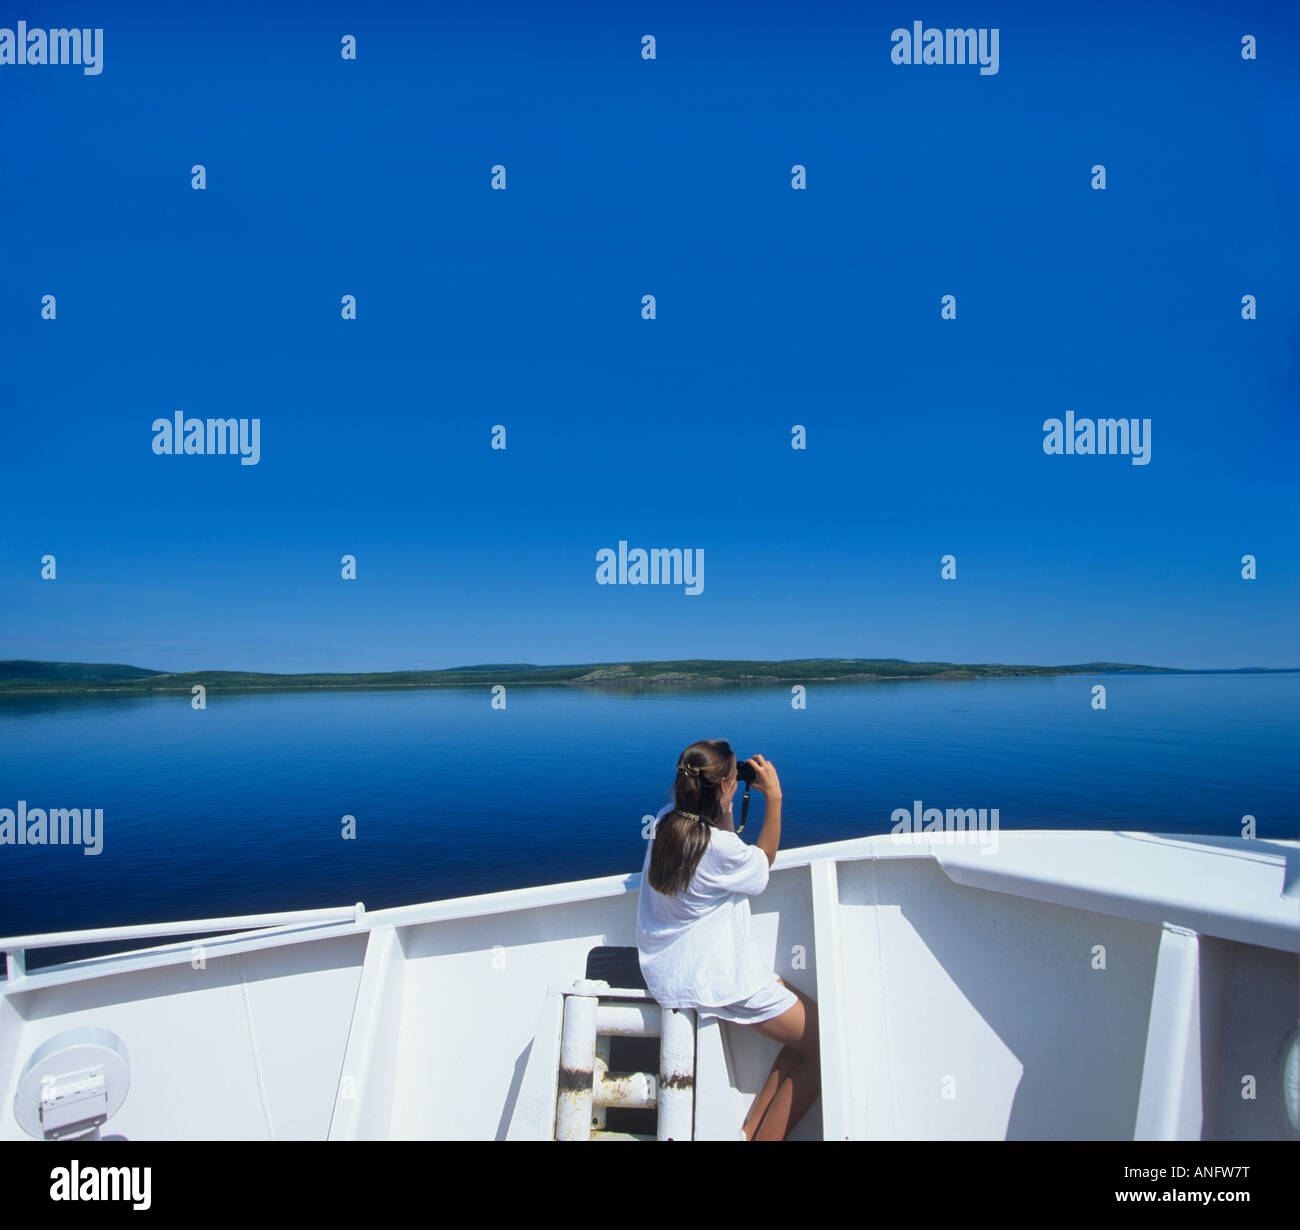 Young girl Birdwatching on deck of Coastal Boat, Cartwright, Labrador, Canada. Stock Photo